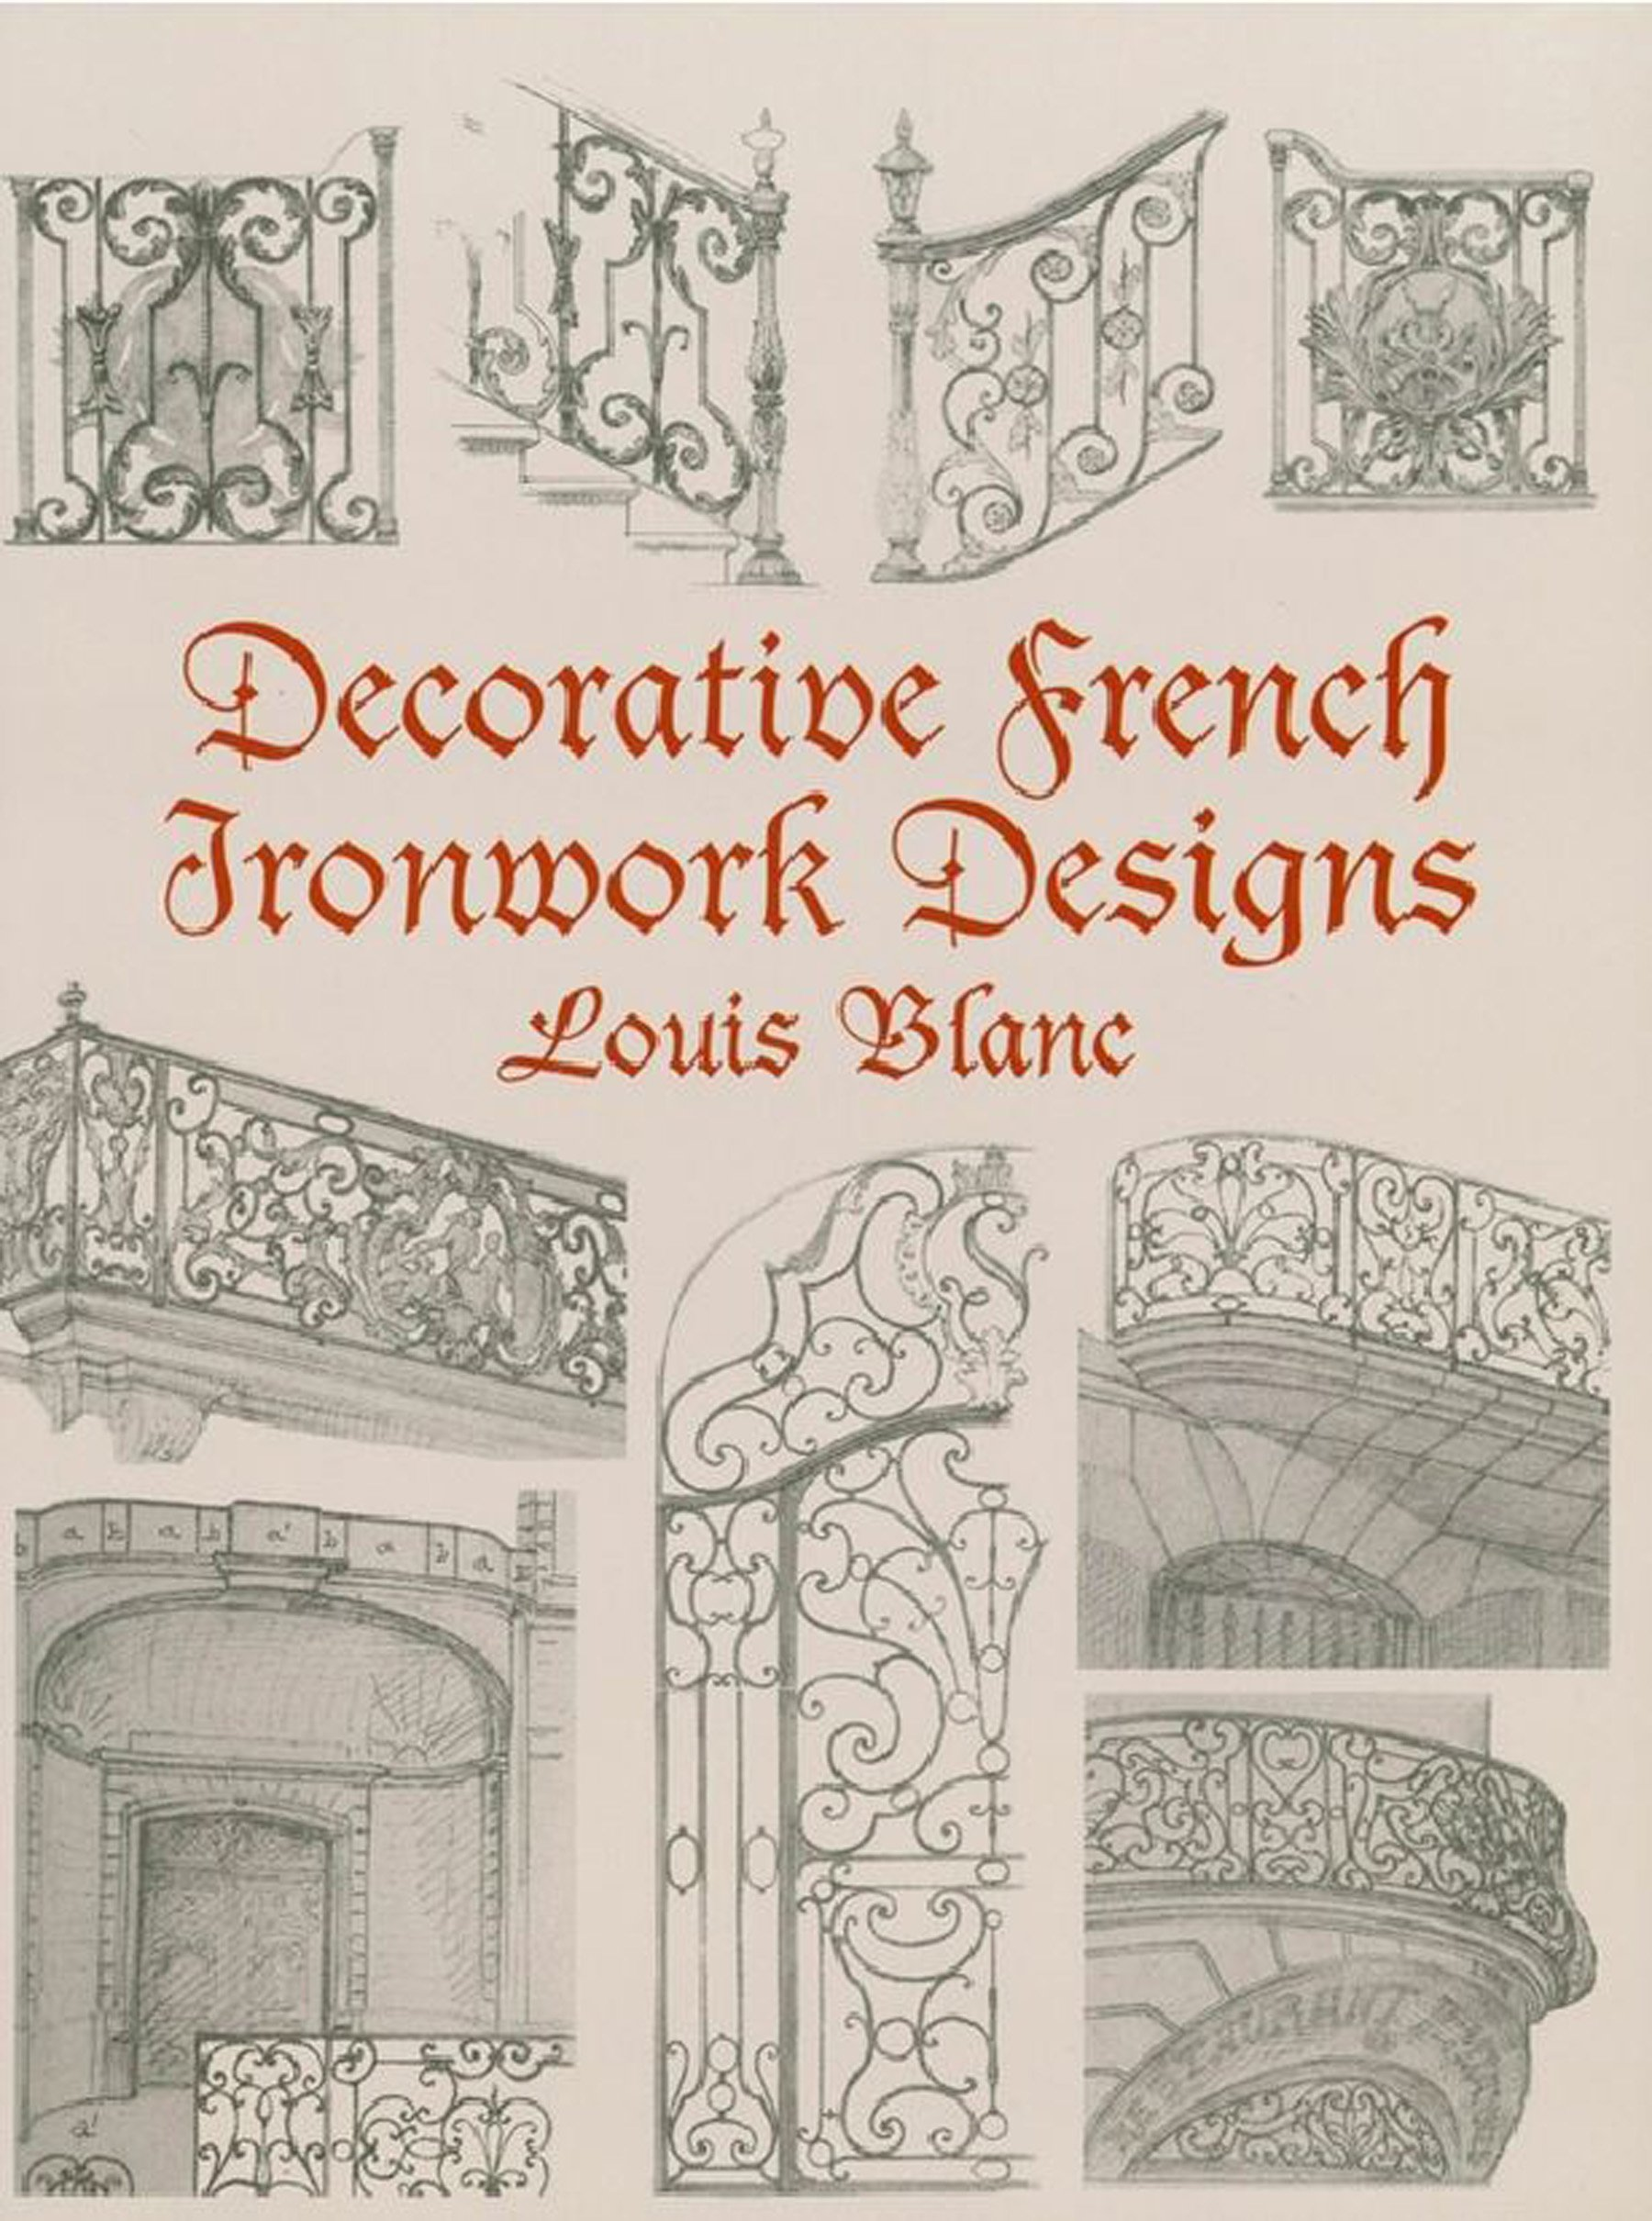 Decorative French Ironwork Designs (Dover Jewelry and Metalwork) (English Edition)